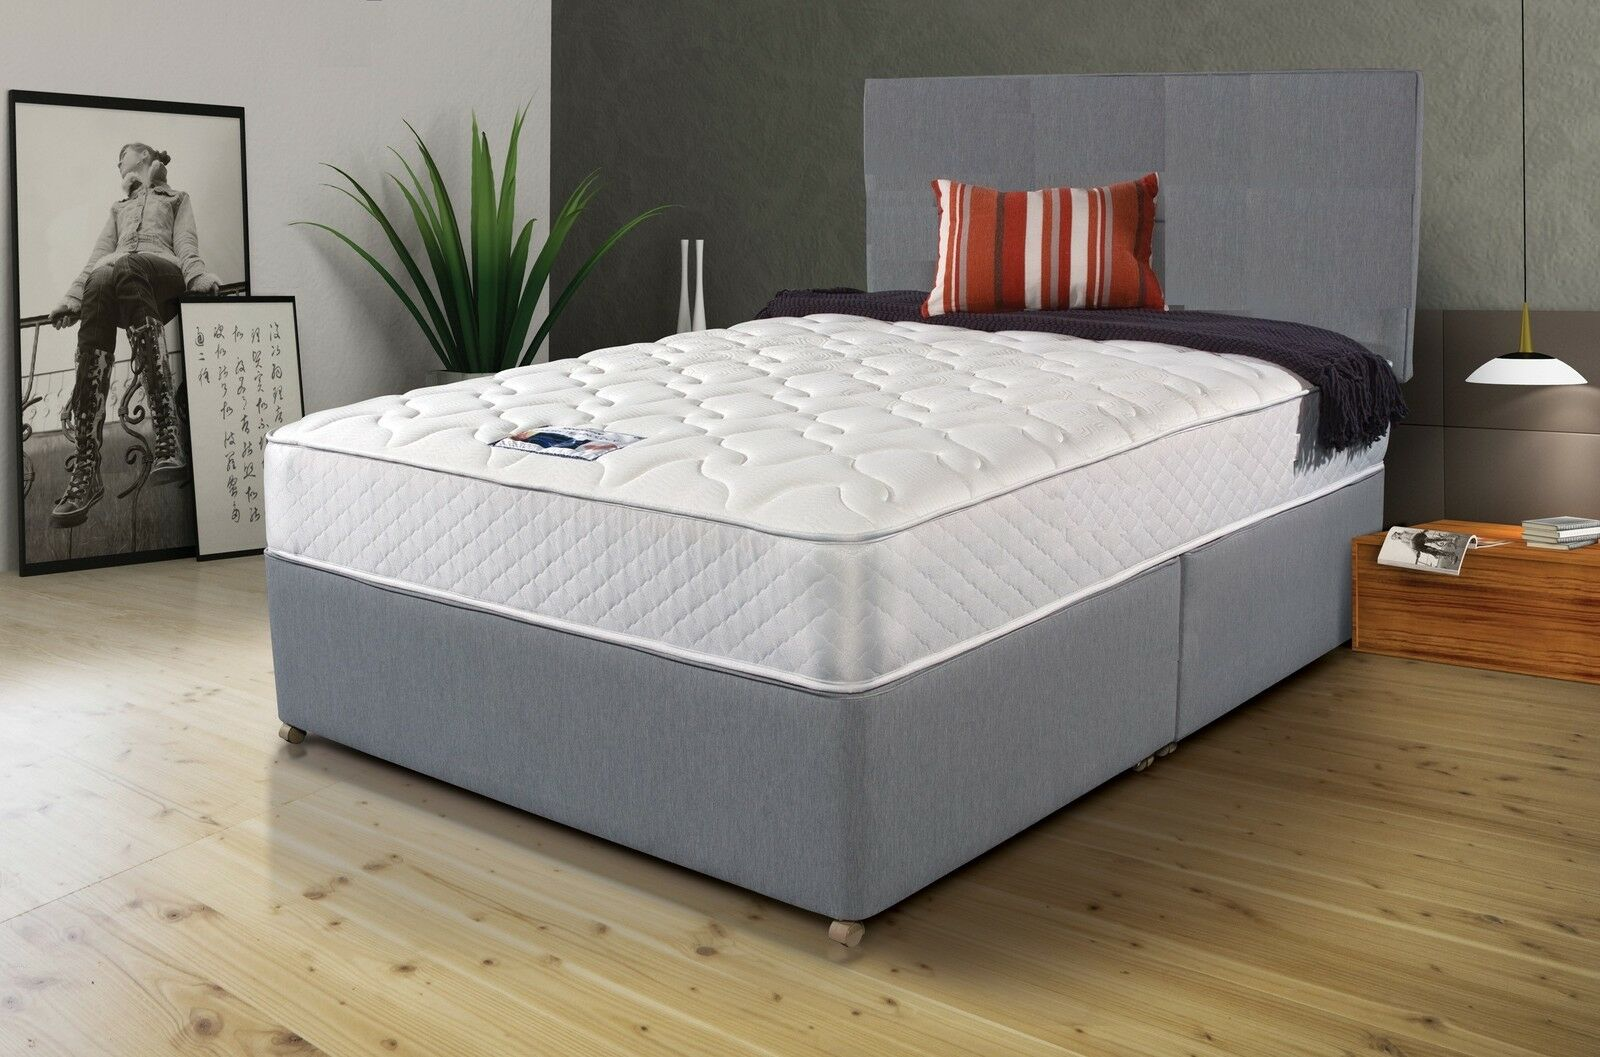 Divan Bed And Mattress Deals Details About Grey Fabric Divan Bed Set Memory Mattress Headboard 3ft 4ft 4ft6 Double 5ft